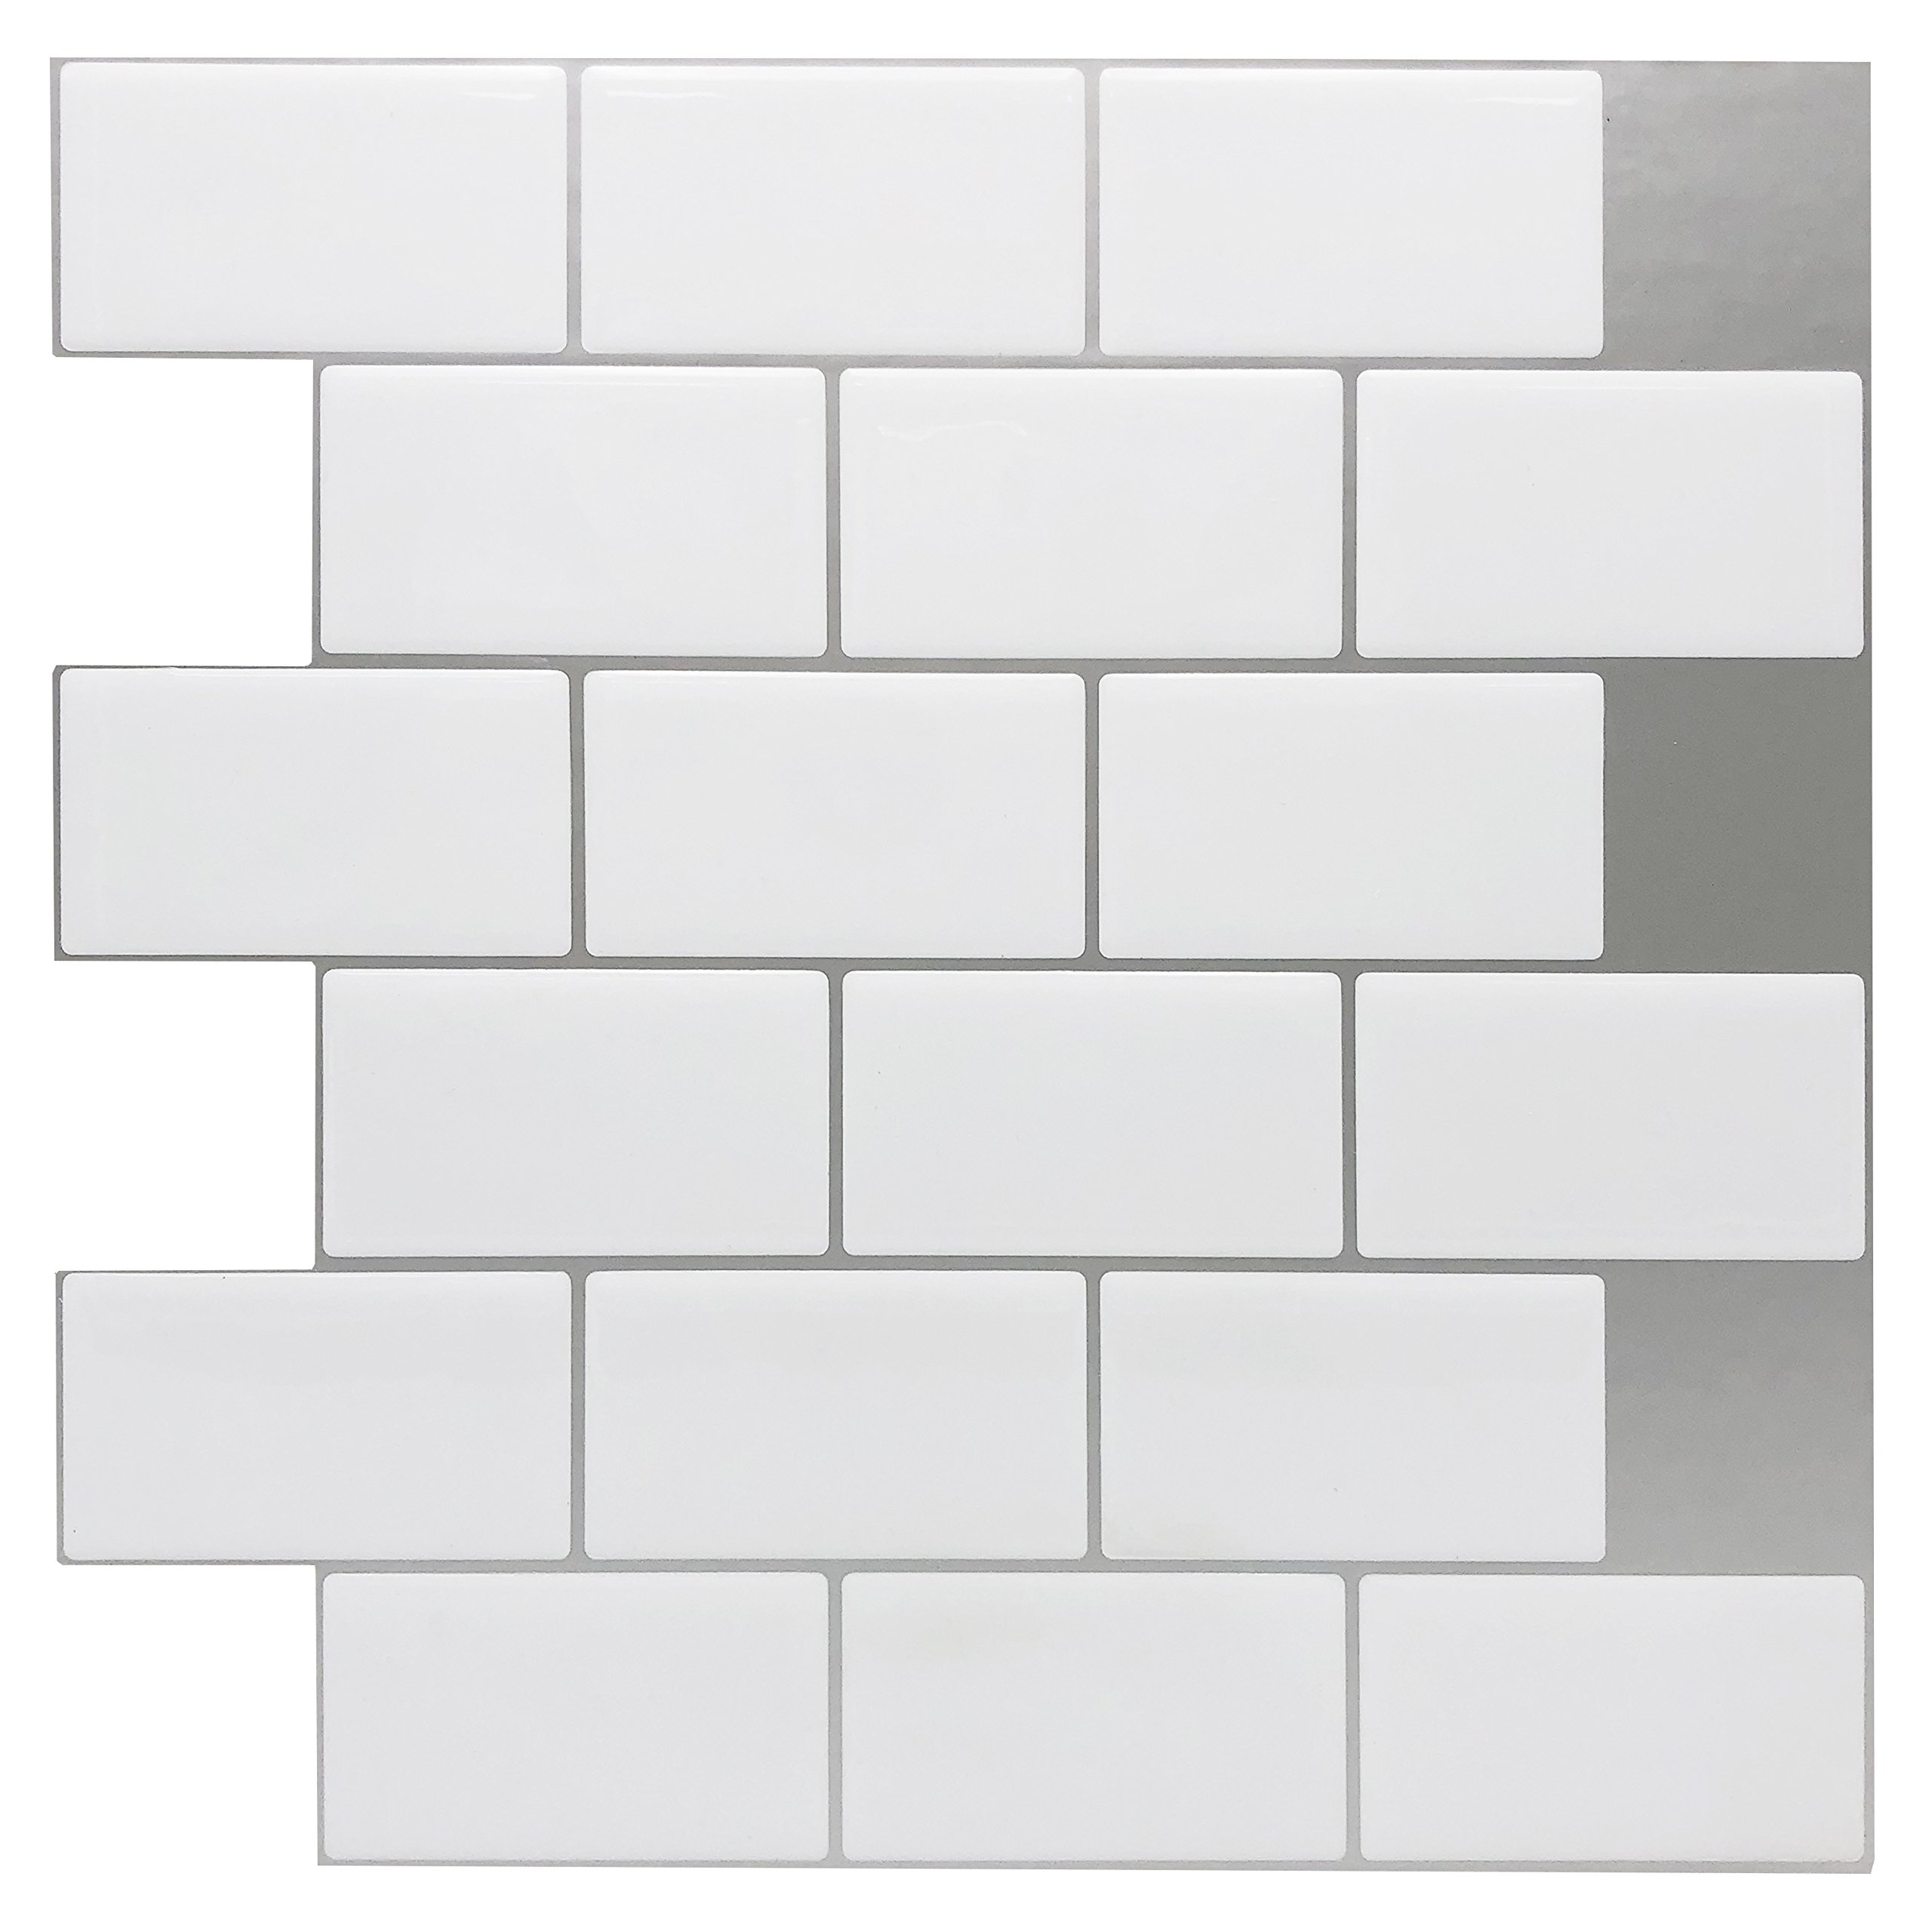 Art3d 12''x12'' Peel and Stick Backsplash Tile Sticker for Kitchen, White, (10 Sheets)